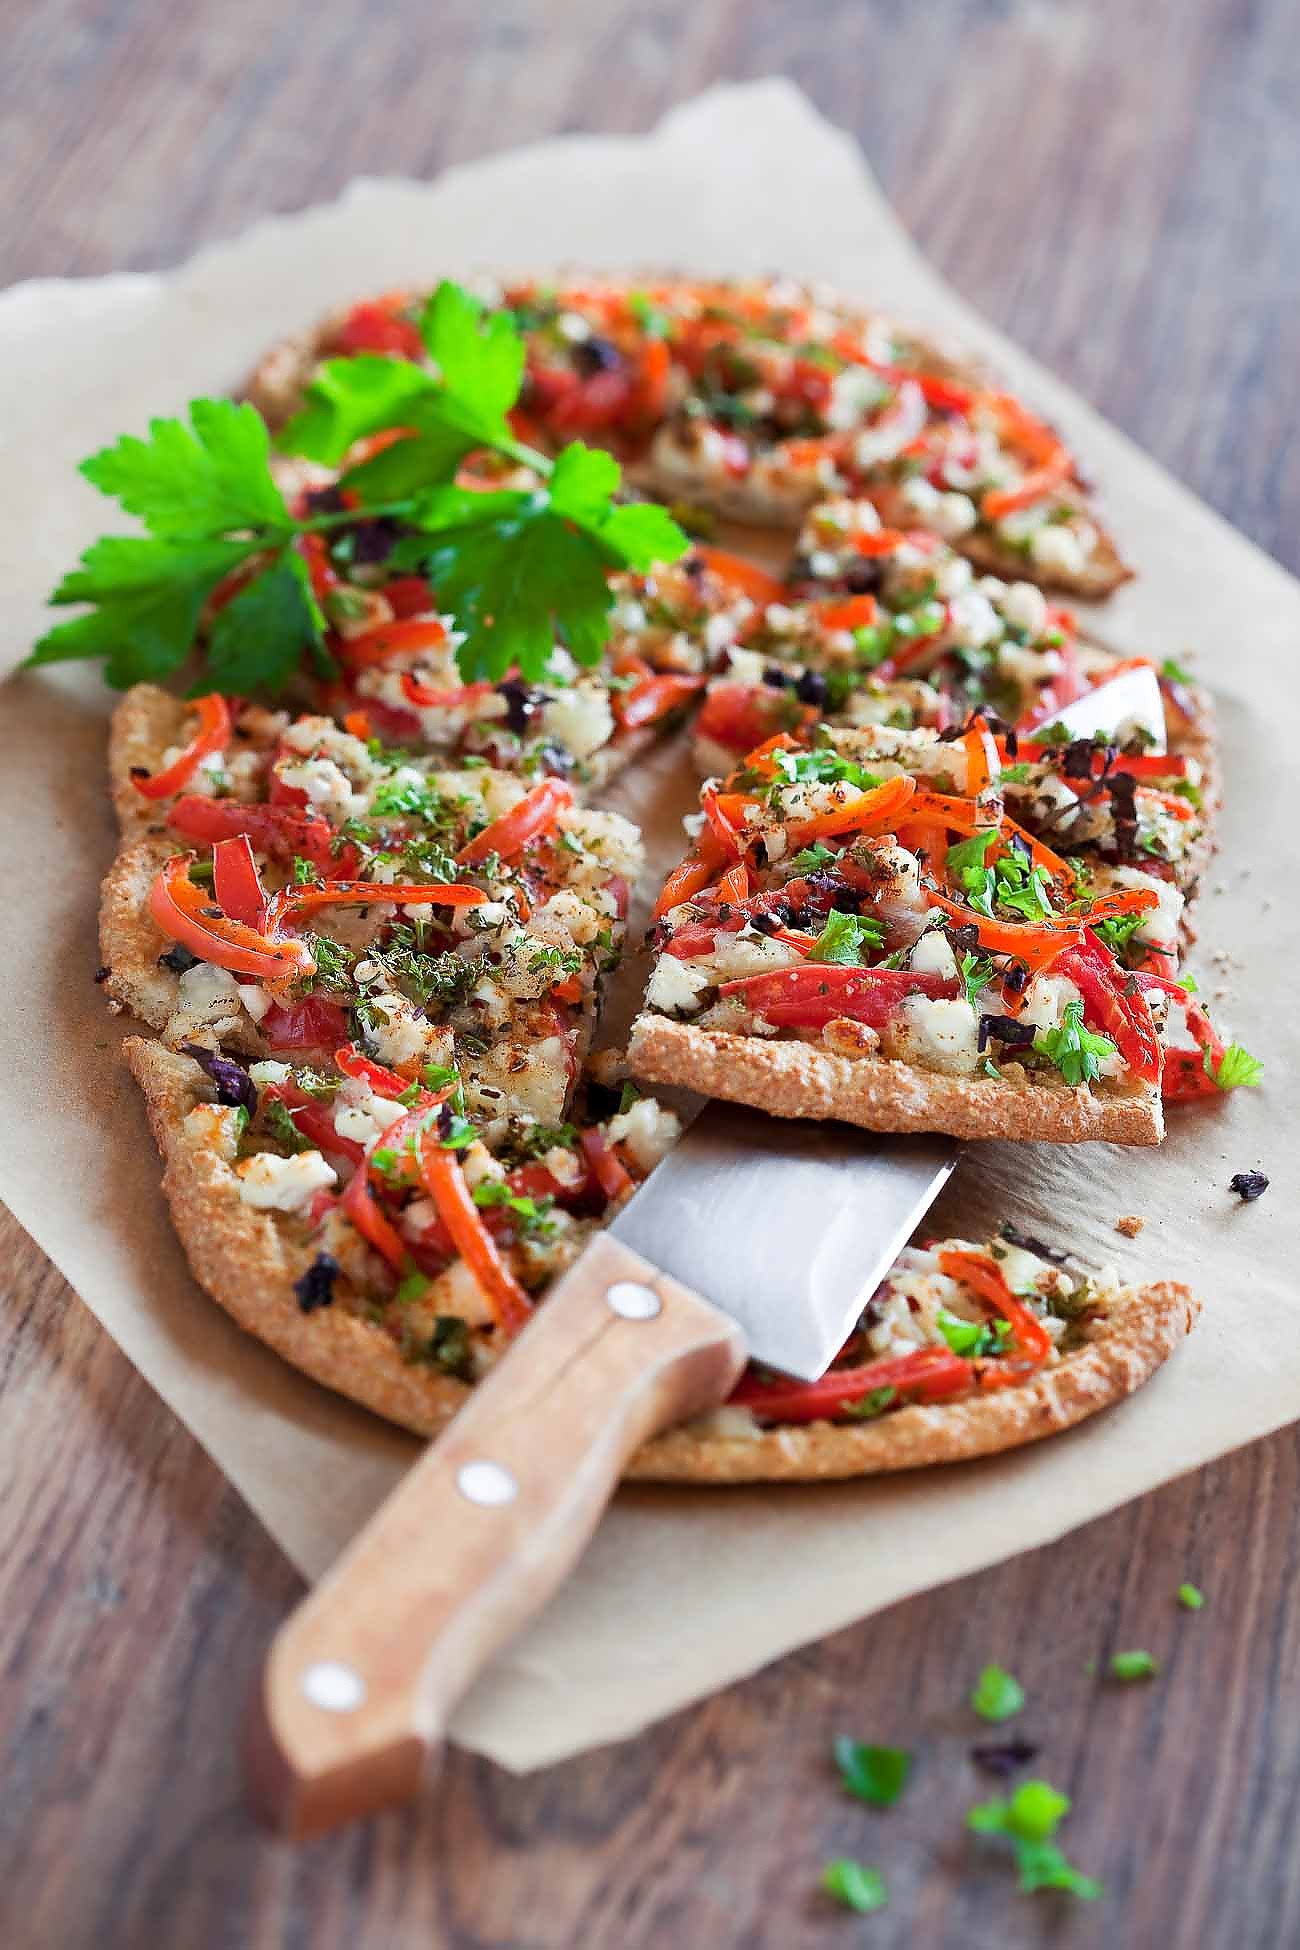 Roasted Vegetable Pizza Recipe With Oat Flour Crust